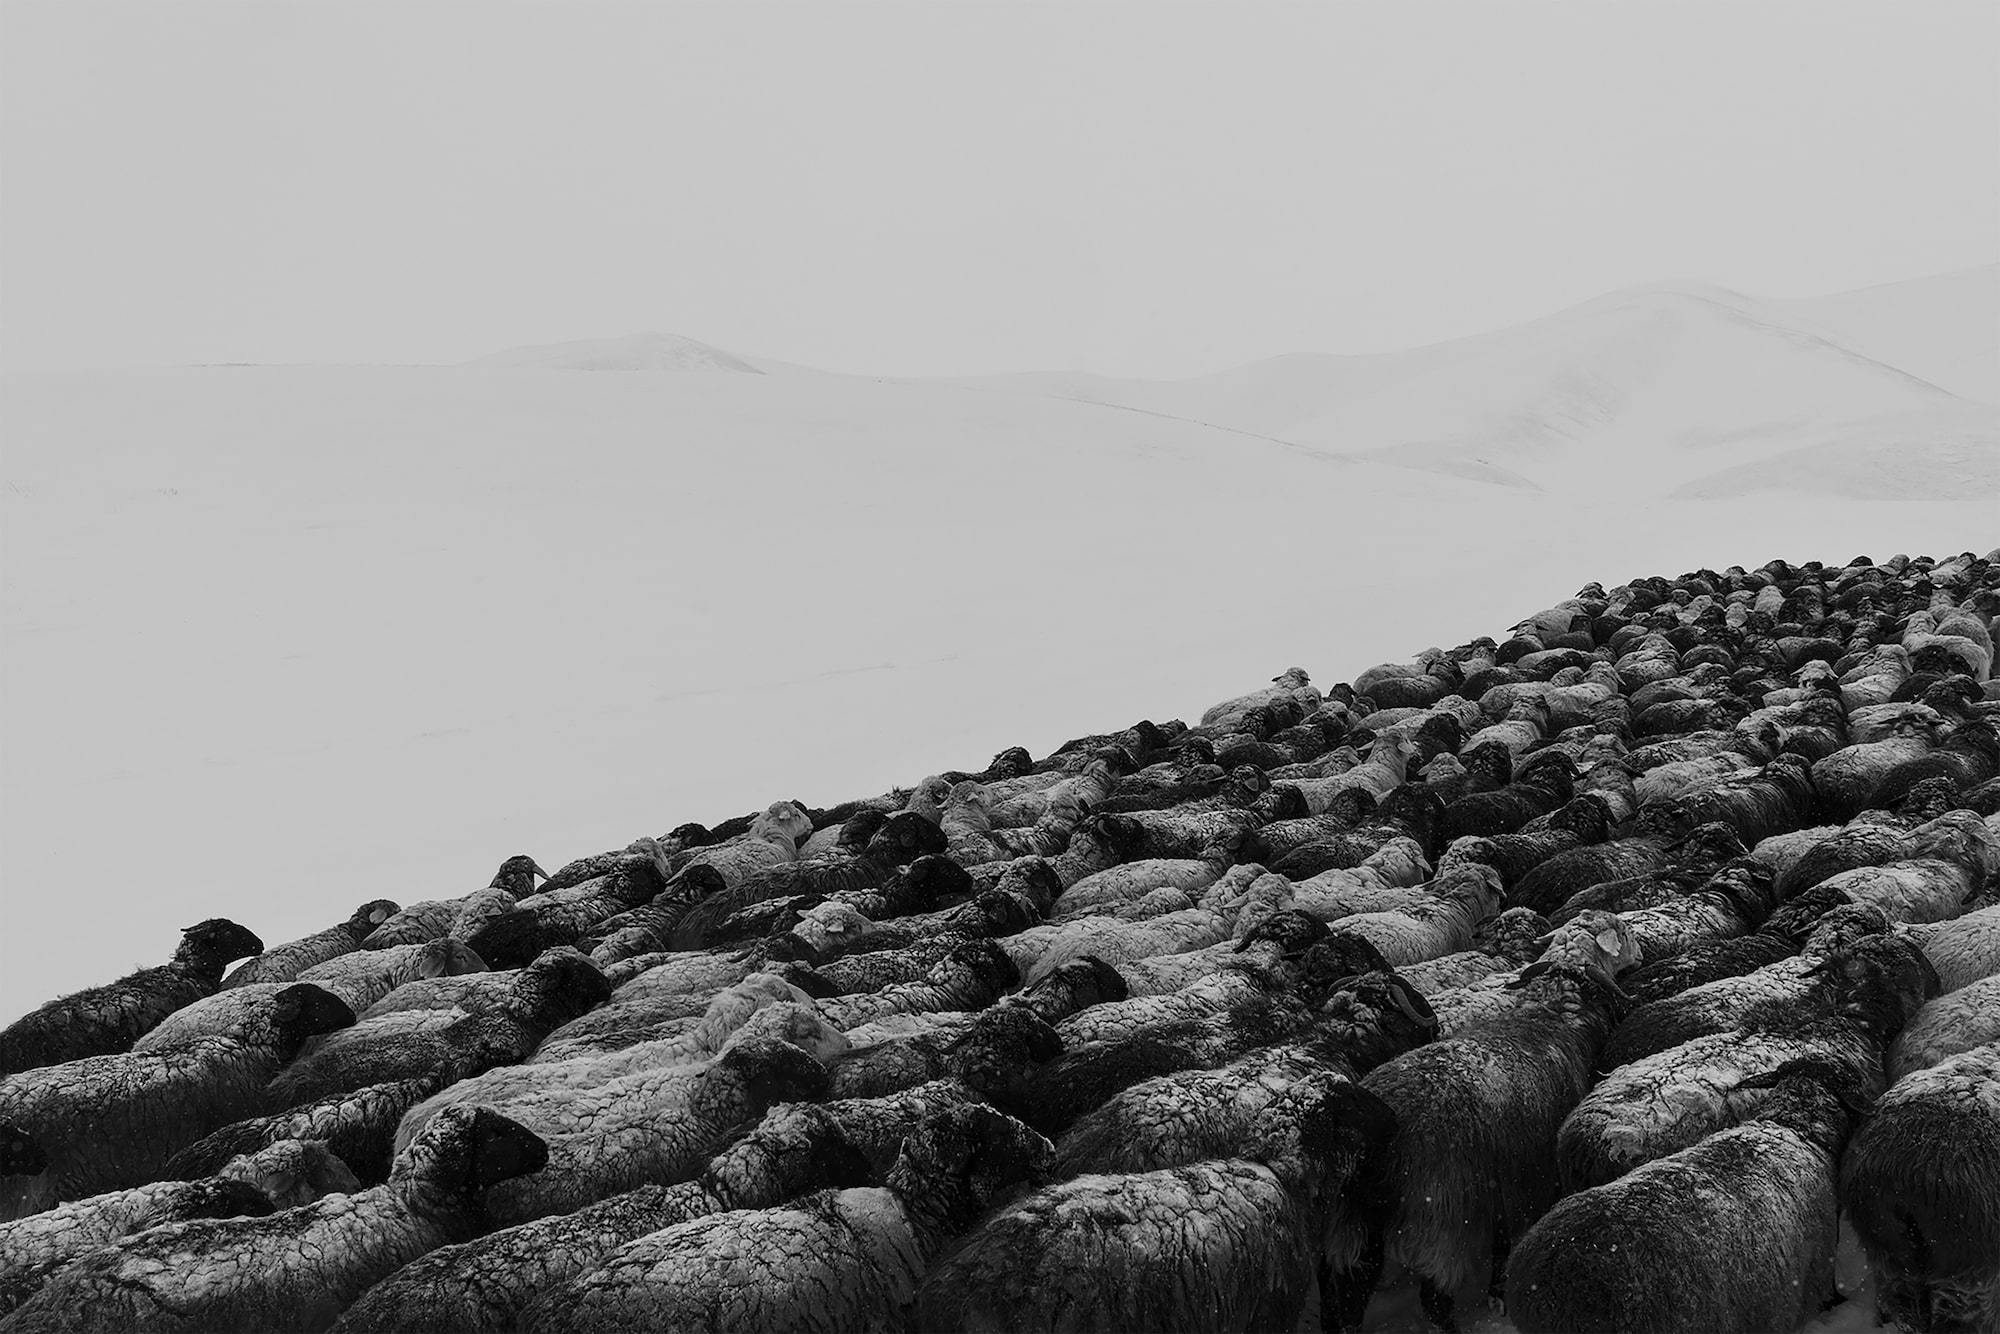 frederik buyckx sony alpha 7RM3 flock of snow covered sheep make their way up a mountain